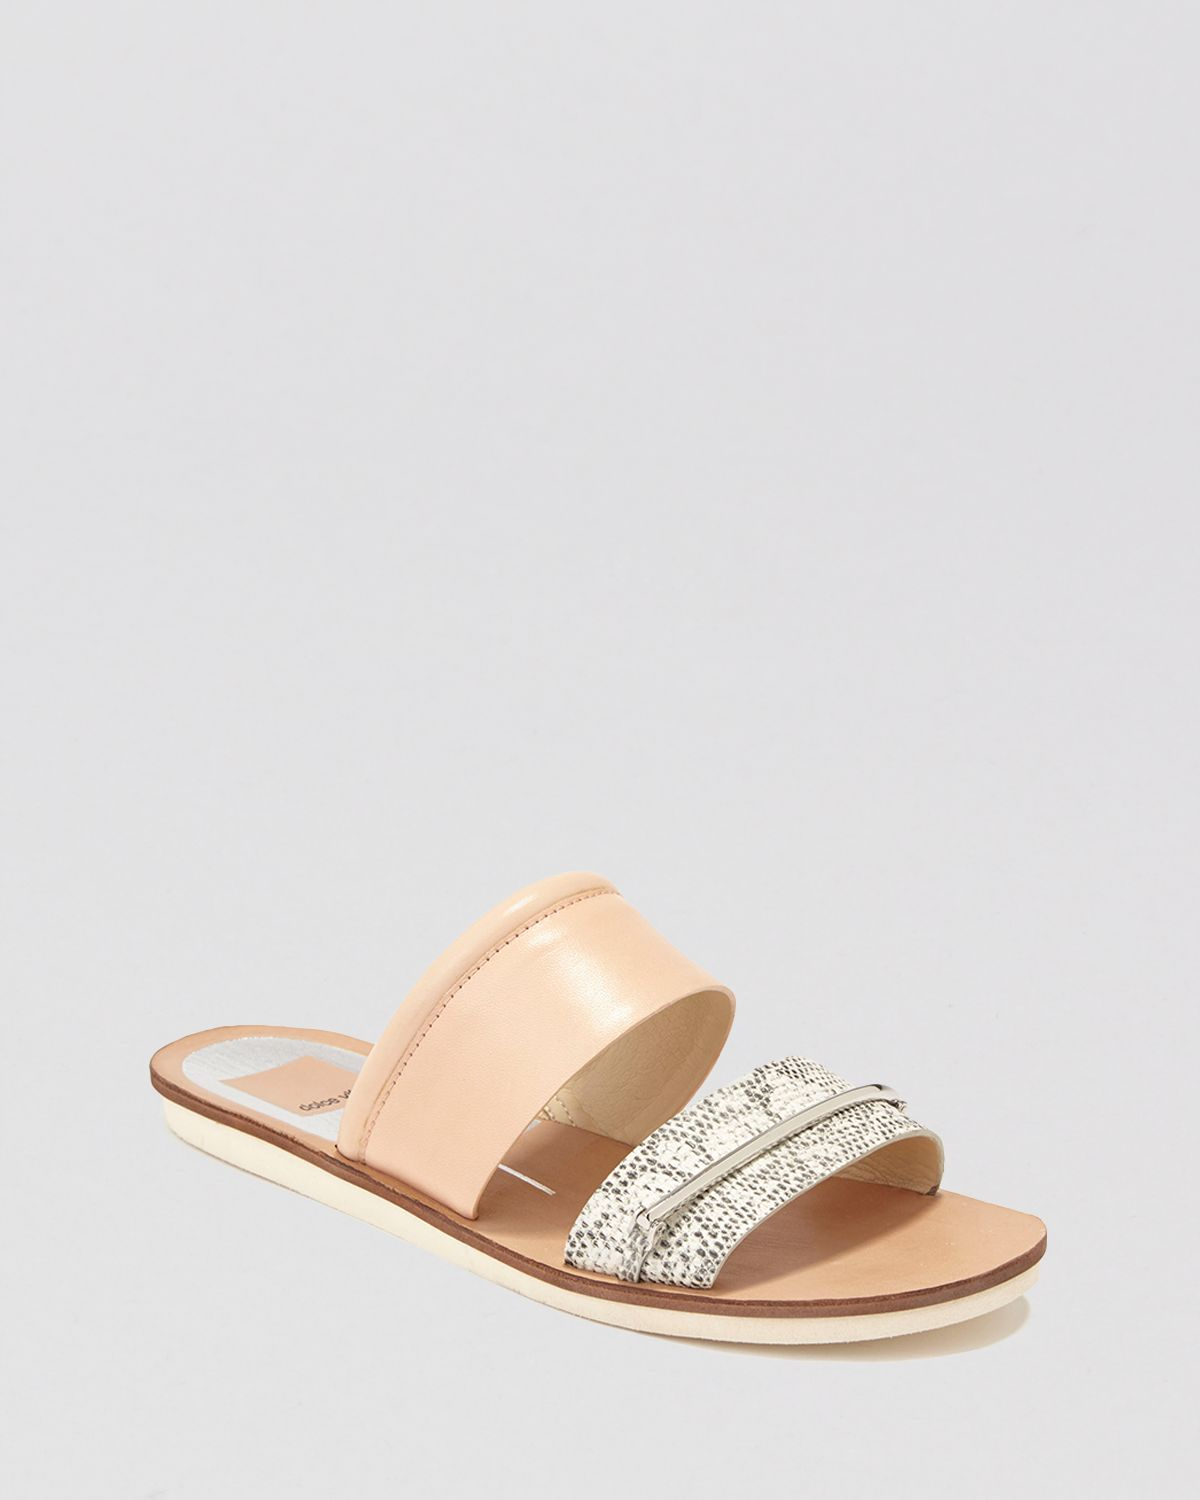 Gallery - Dolce Vita Flat Slide Sandals Neary In Natural Lyst